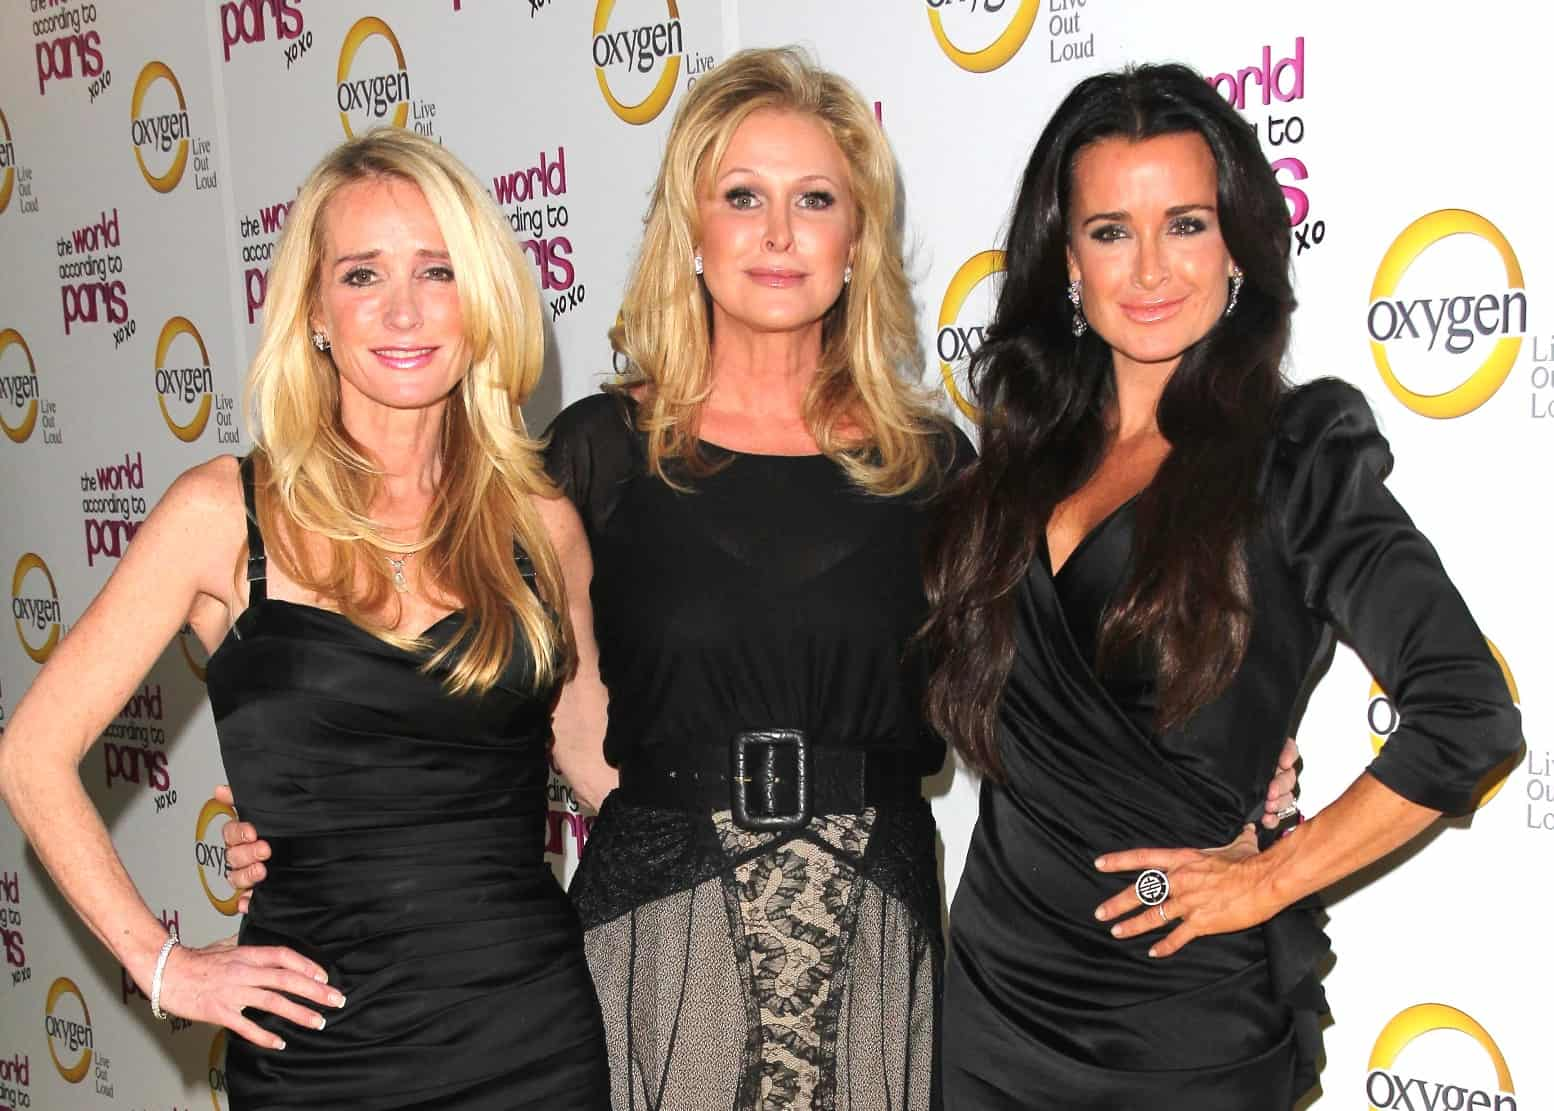 RHOBH Kim Richards, Kathy Hilton and Kyle Richards